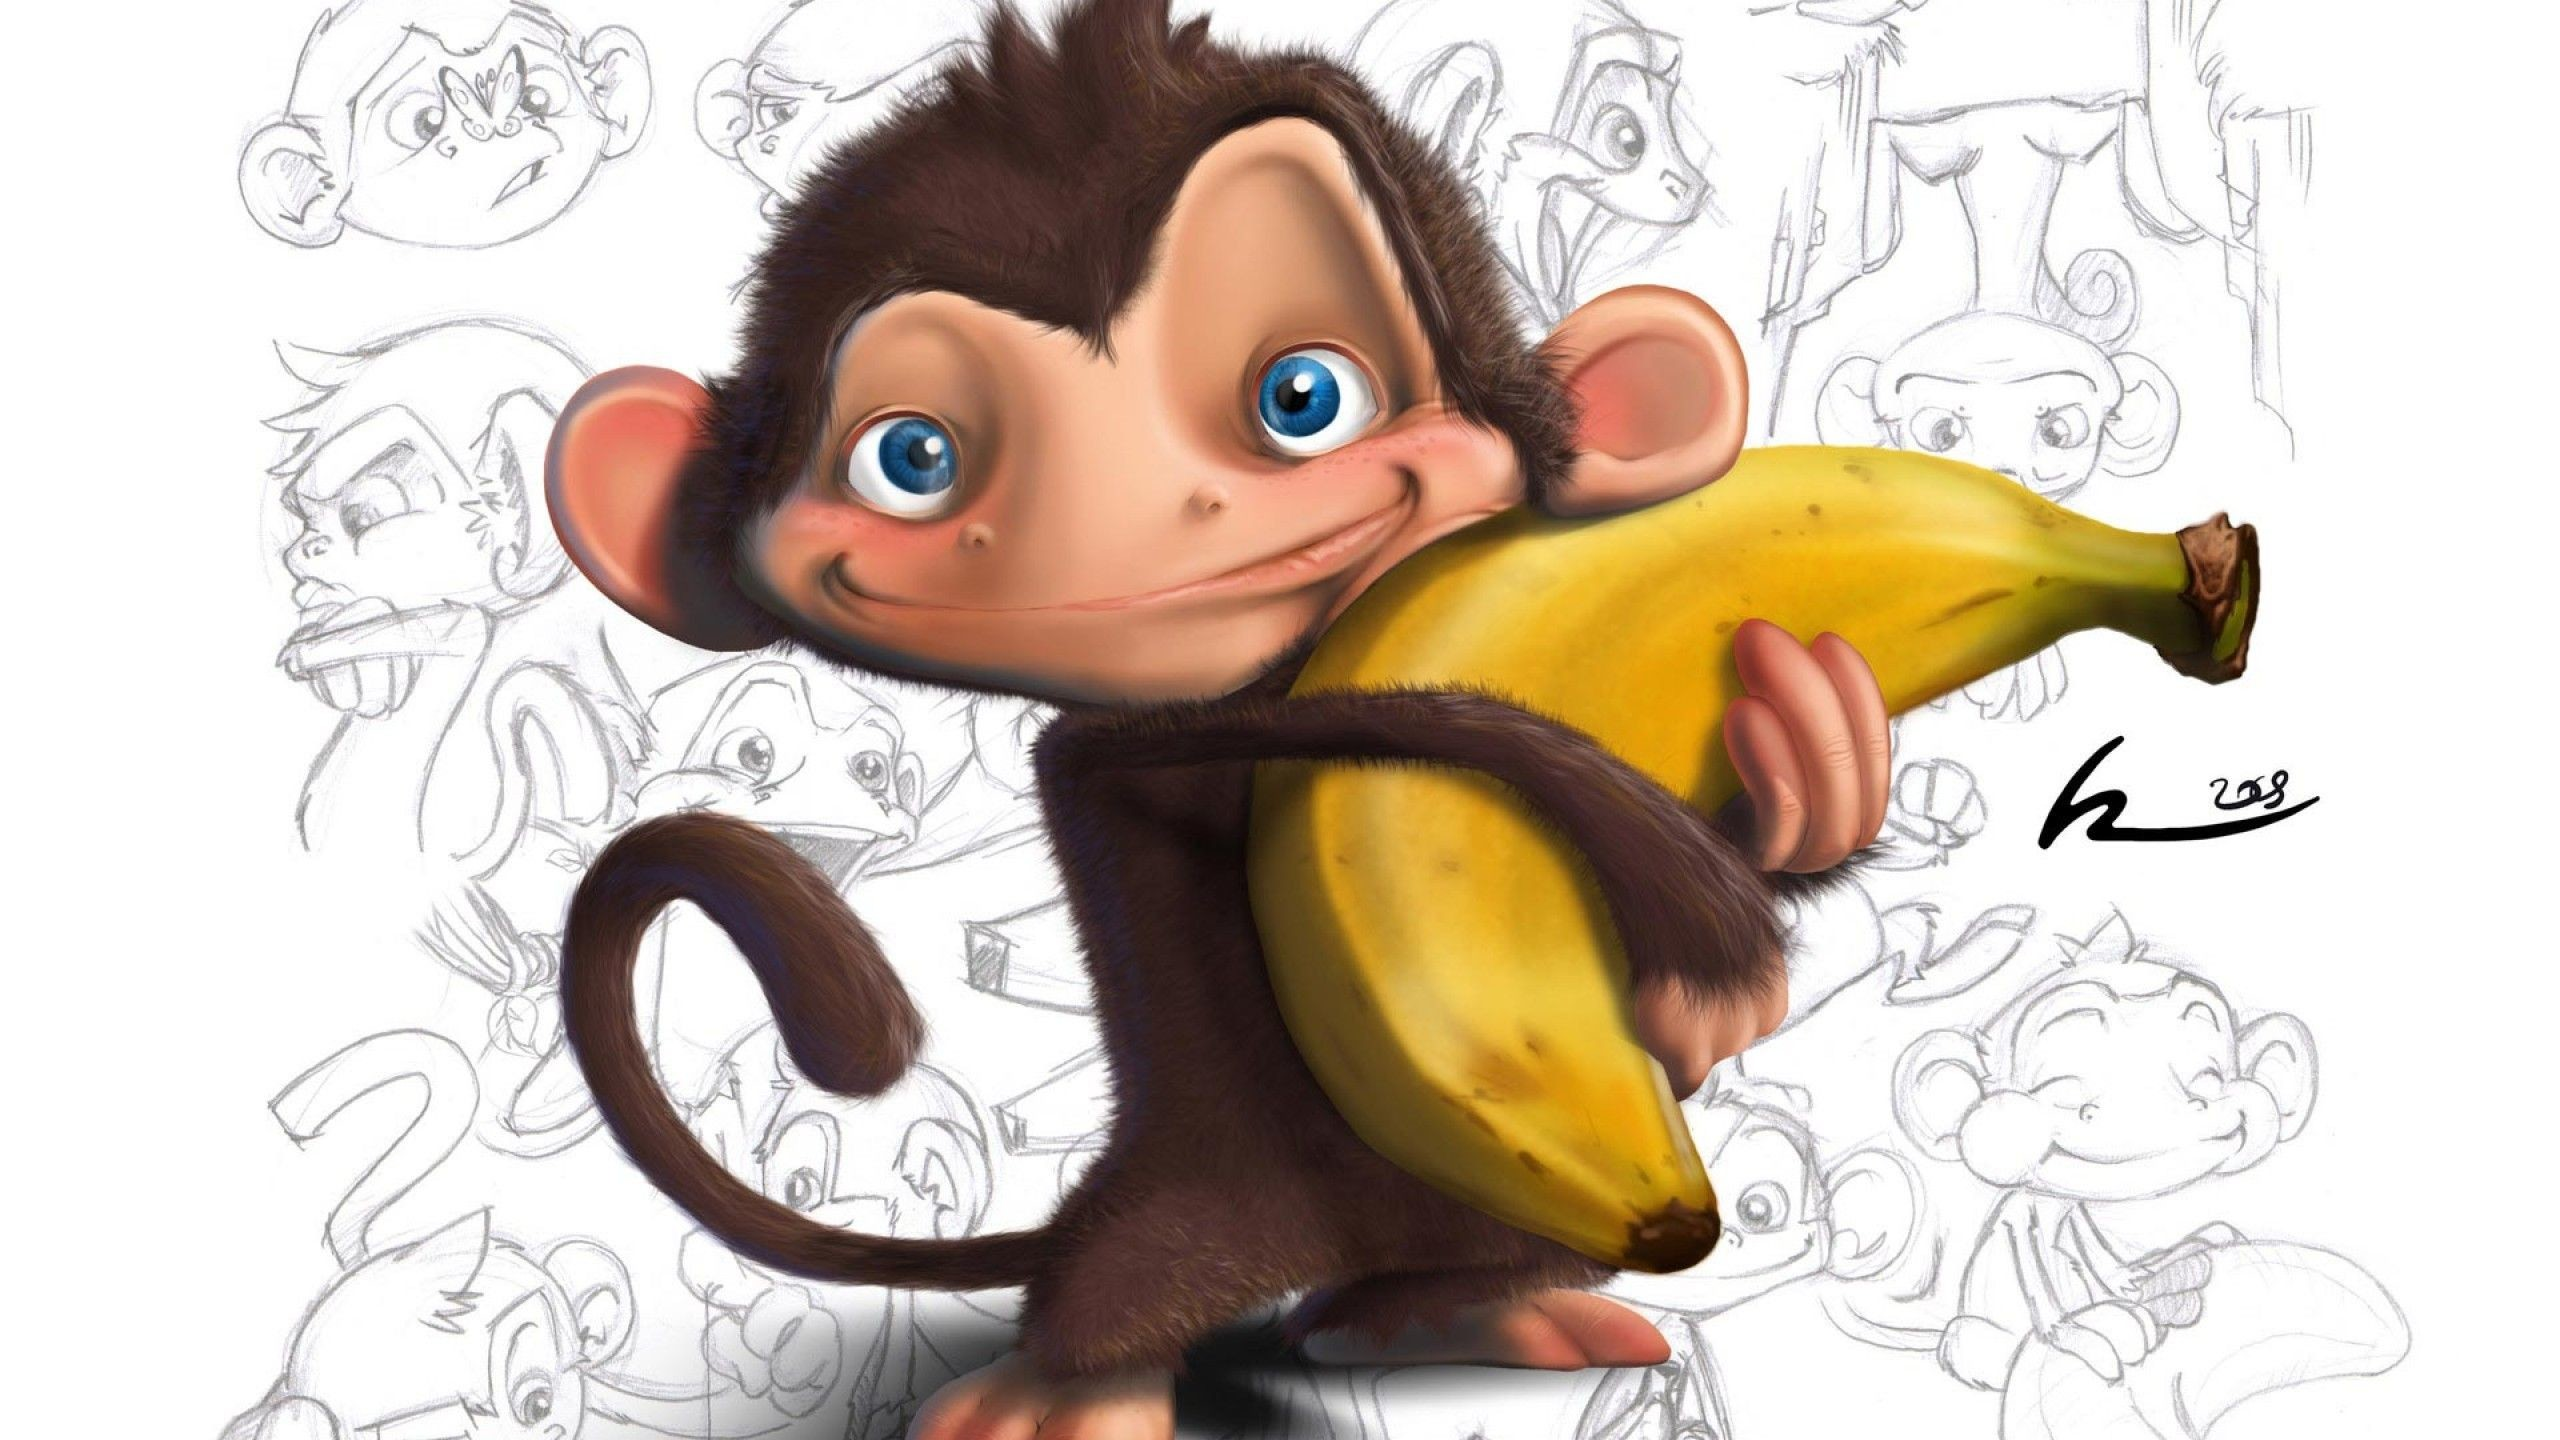 2560x1440 Other Banana Love Monkey Funny Cartoon Cute Pets Free Wallpapers